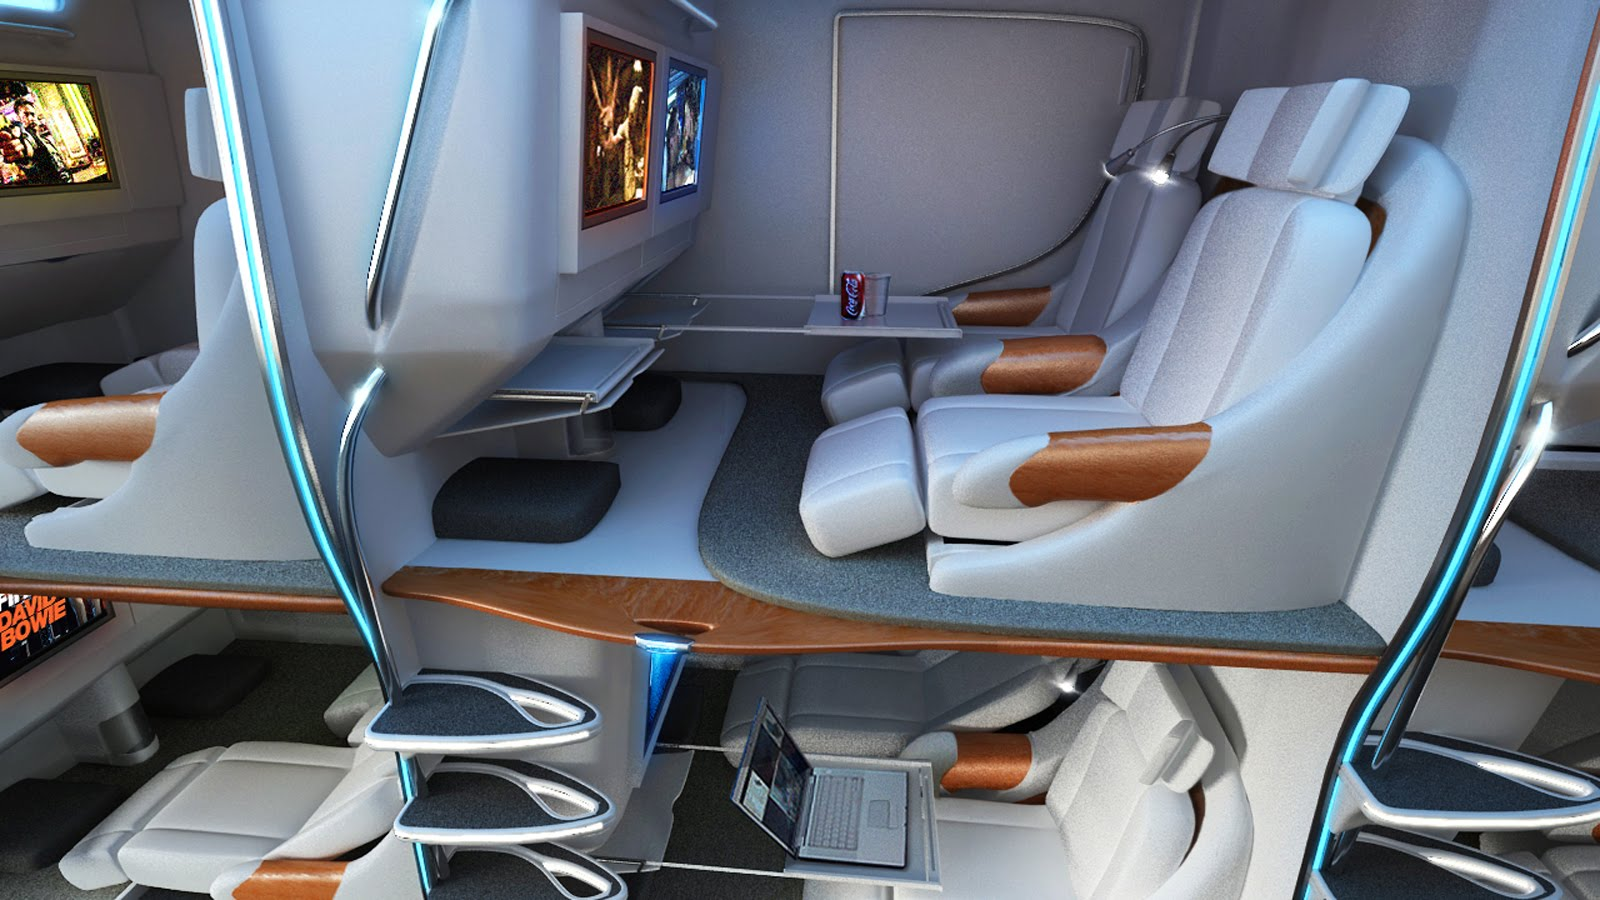 A Hotel In The Sky: Are Double Decker Airline Beds The Future?